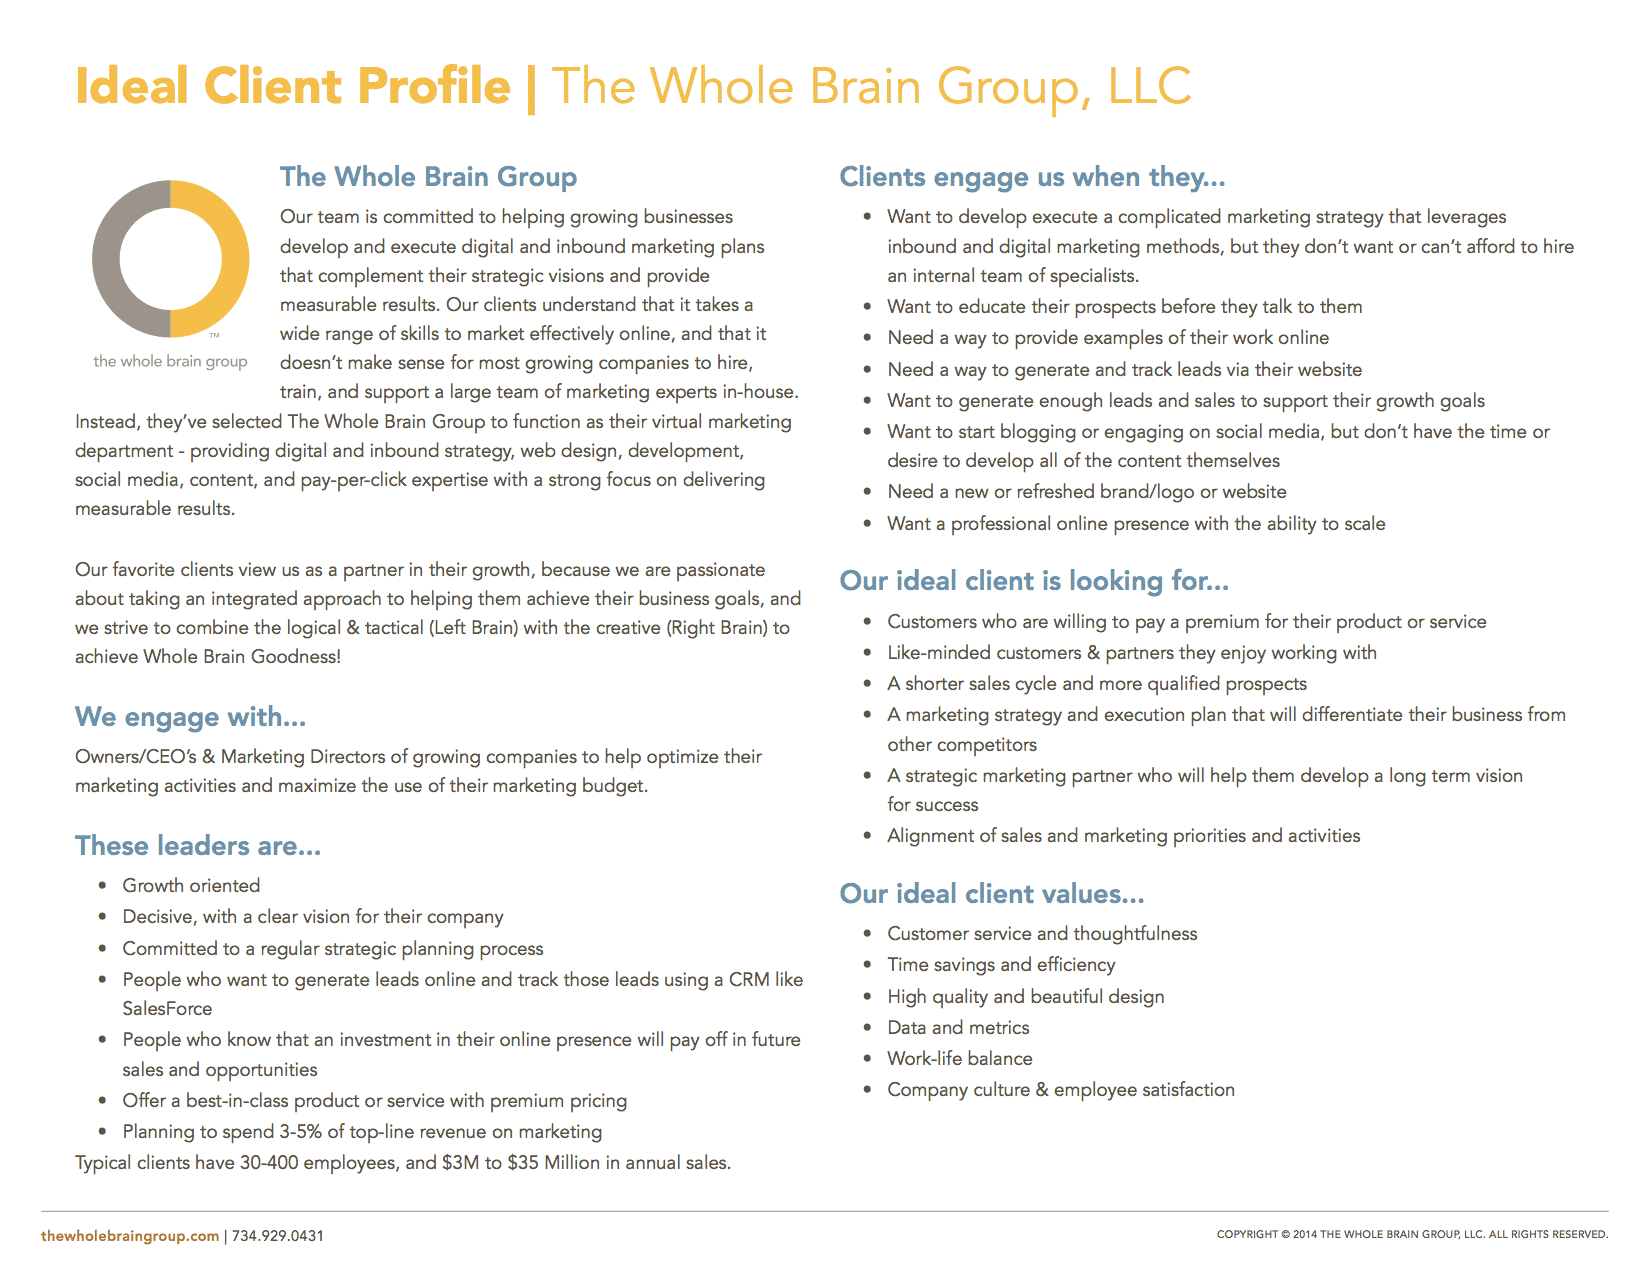 WBG_Ideal_Client_Profile_2014.png